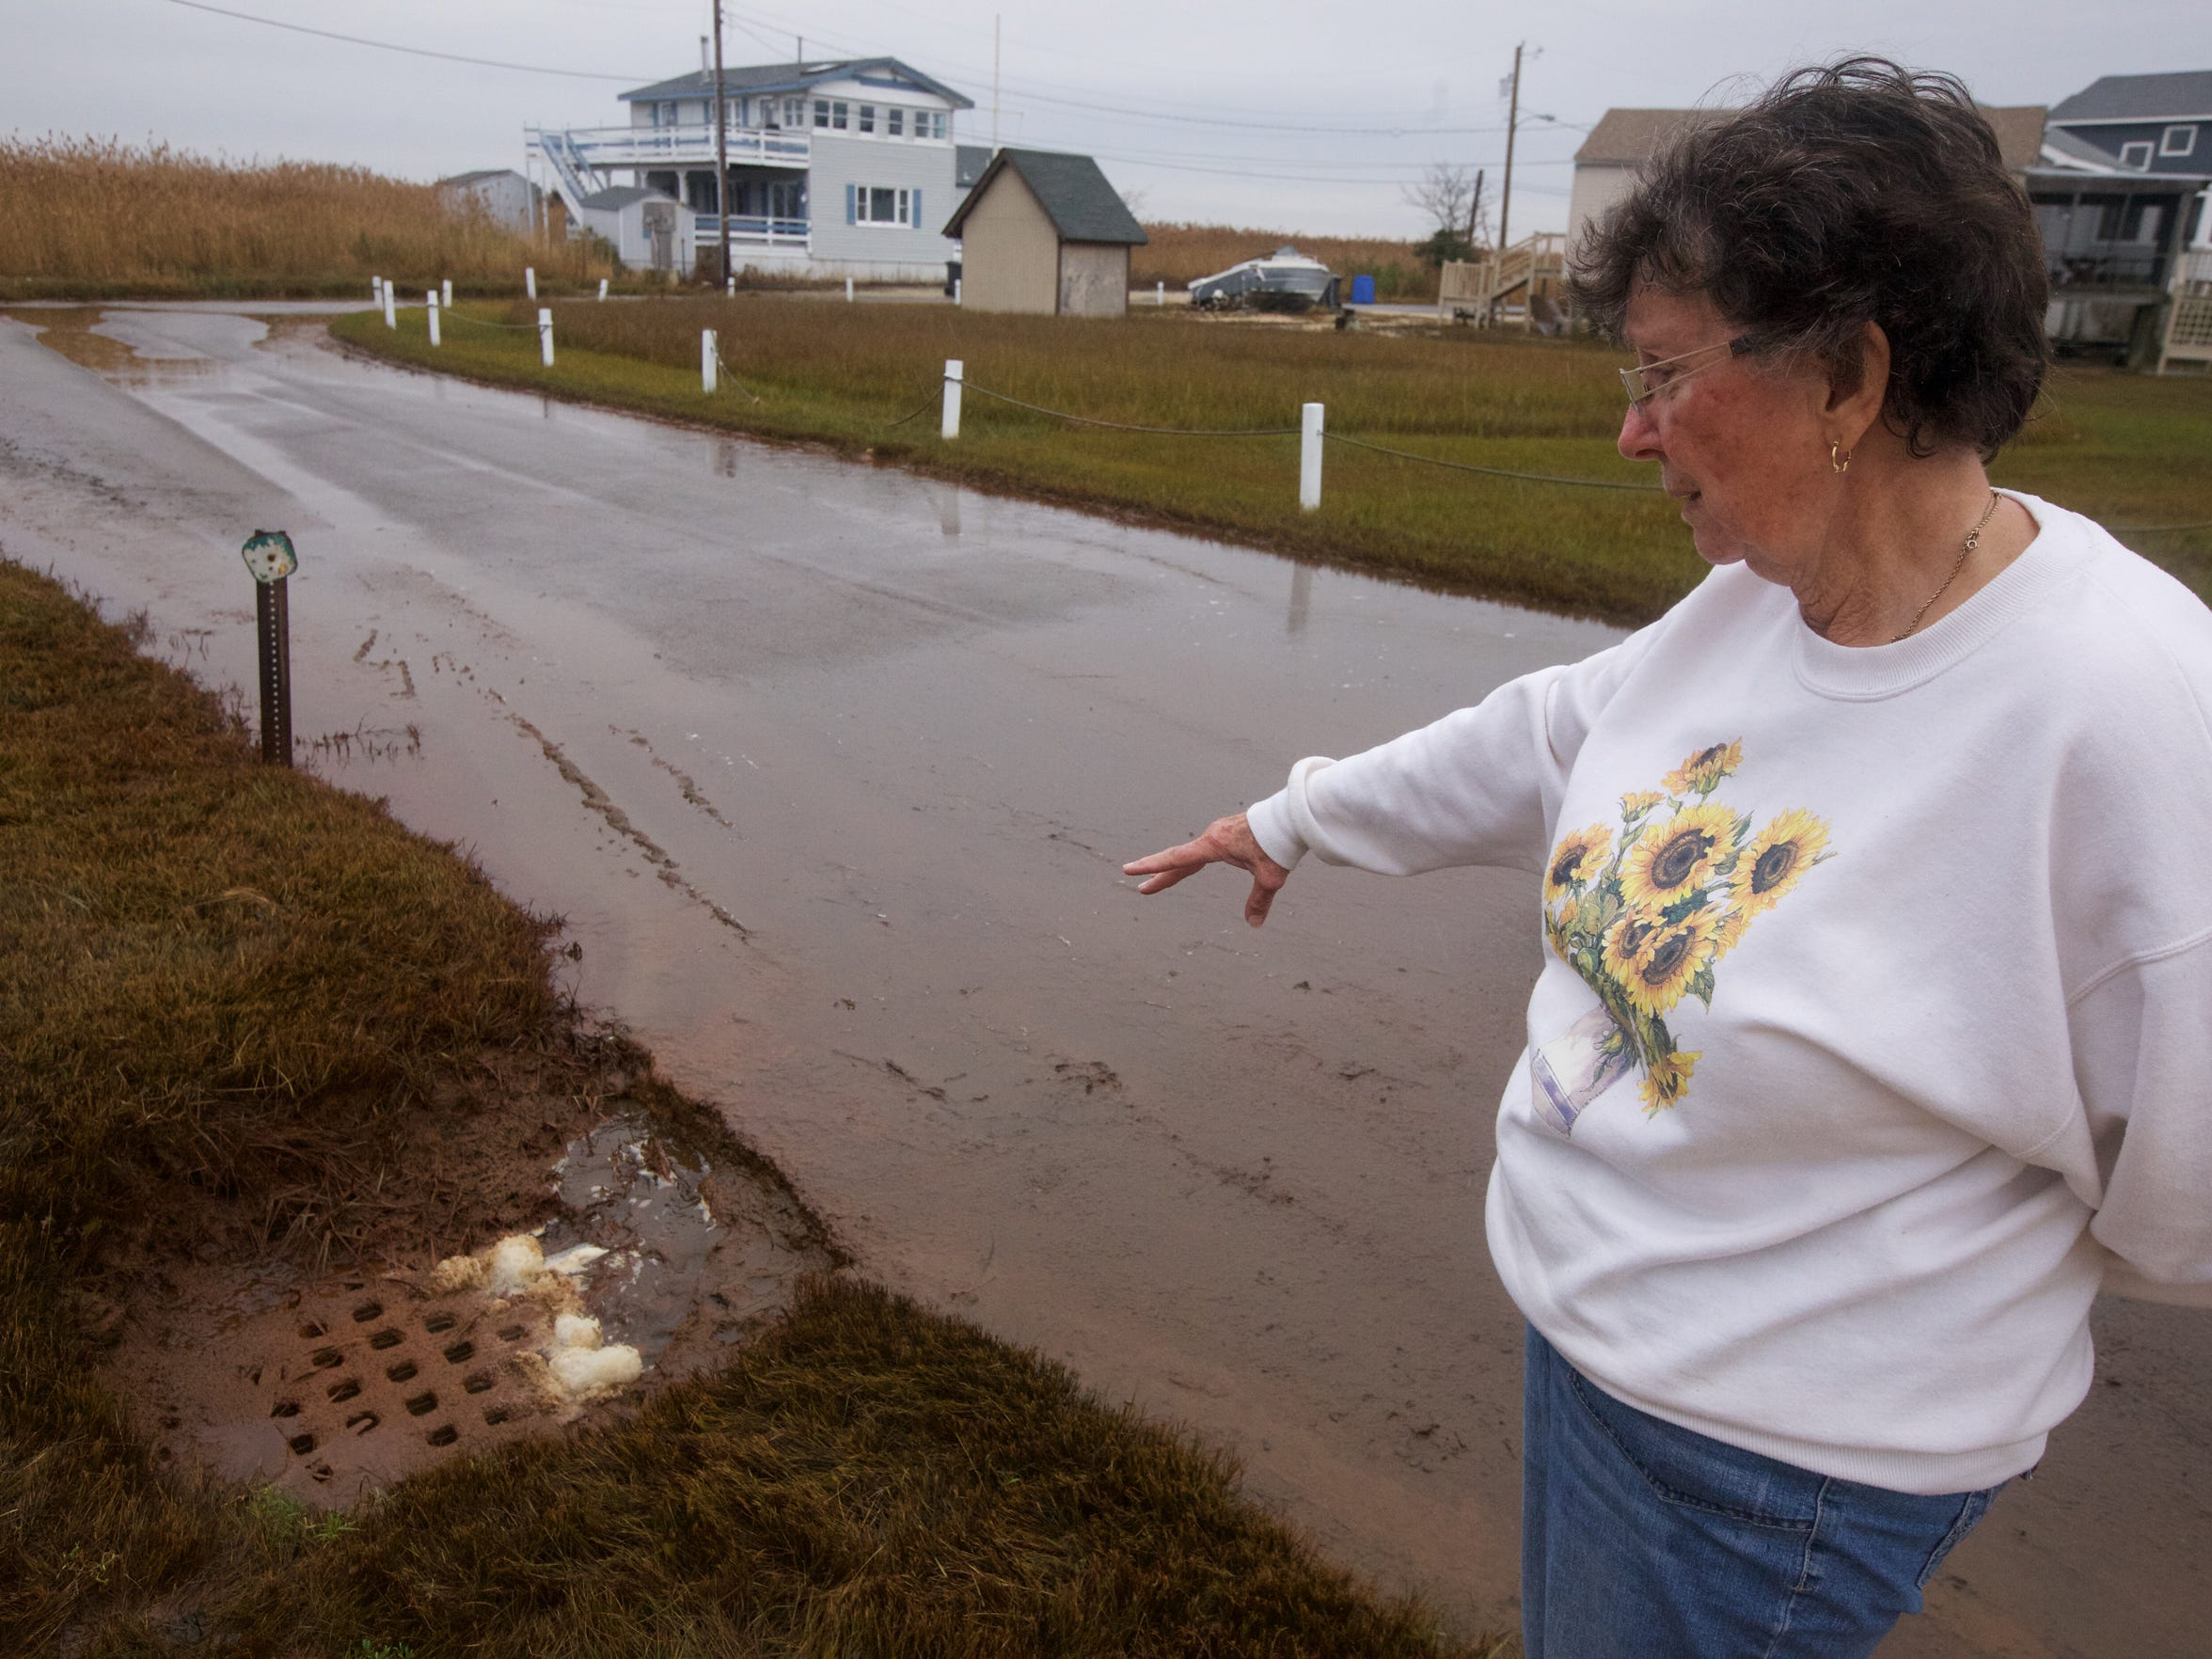 Maryann O'Neill points out a storm drain in front of her home. Sometimes, the drain runs backward at high tide.